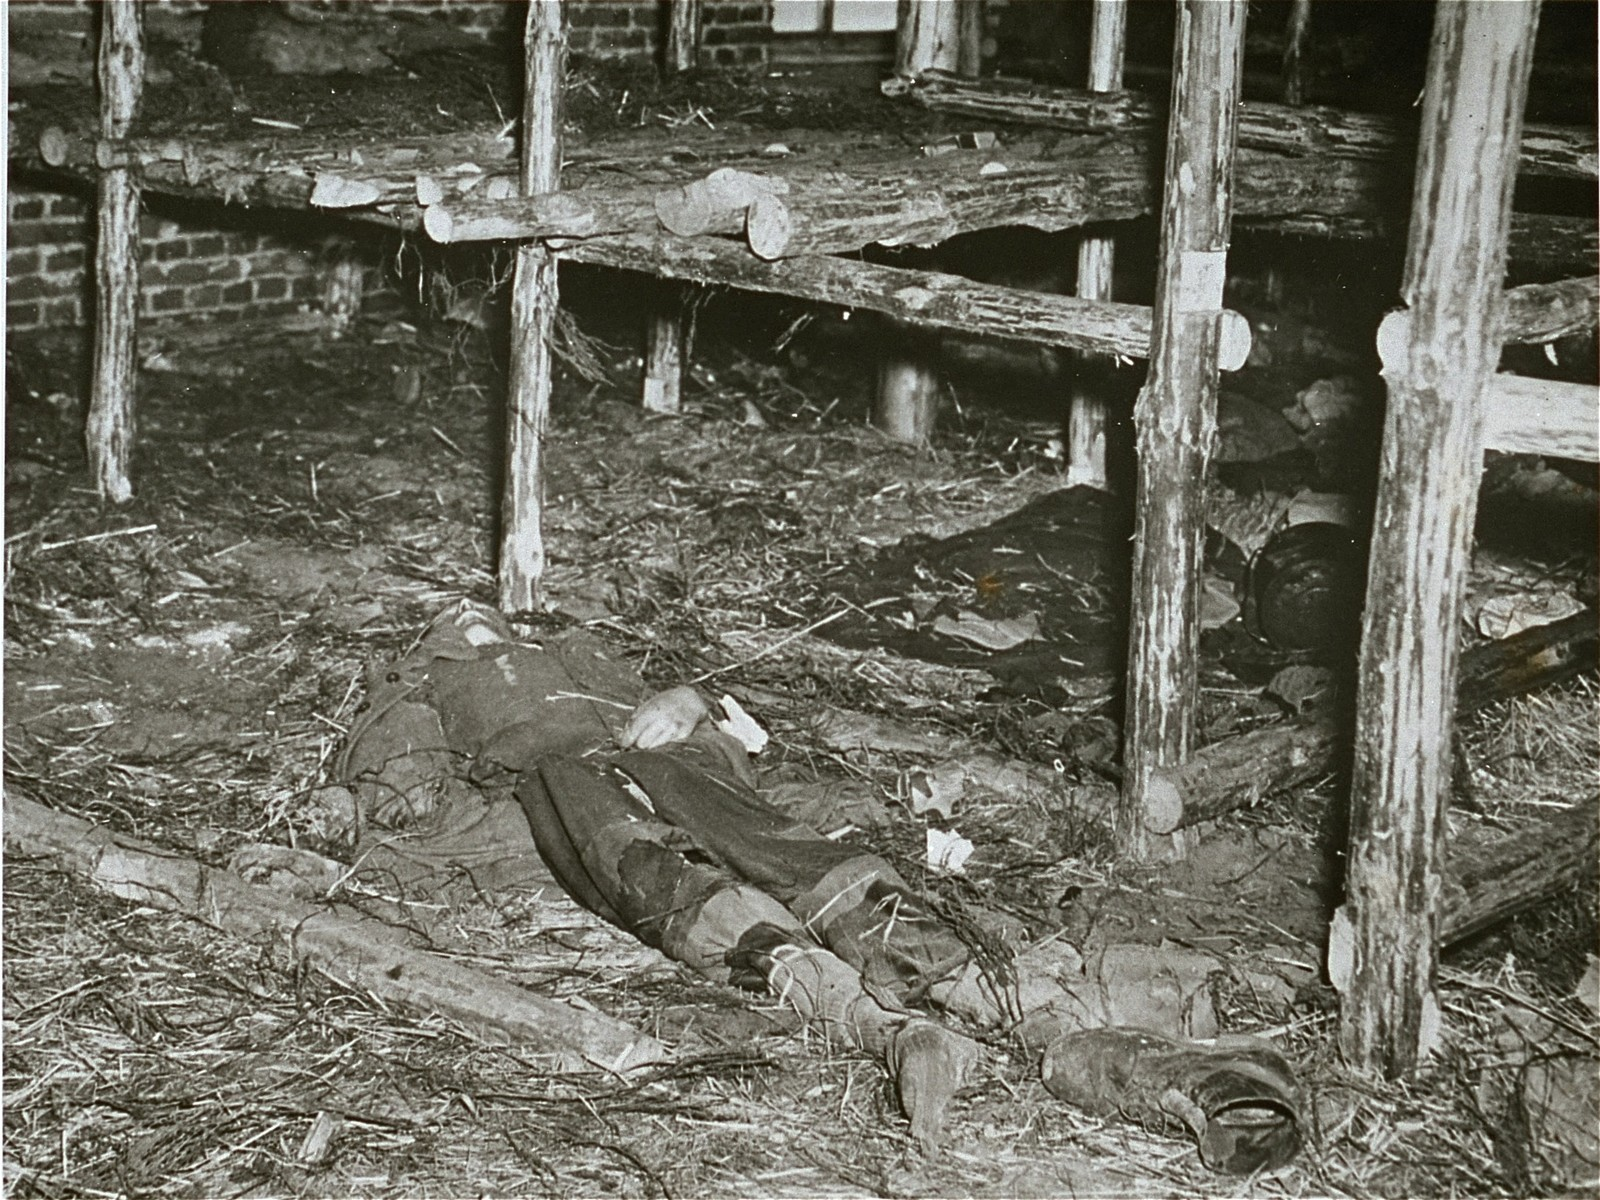 """The body of a former prisoner lies on the ground of a barracks of the Woebbelin concentration camp.  Original Caption: """"This camp, recently captured by troops of the US Ninth Army, had prisoners who starved to death. Here one lies on the floor in the living quarters of the prisoners."""""""